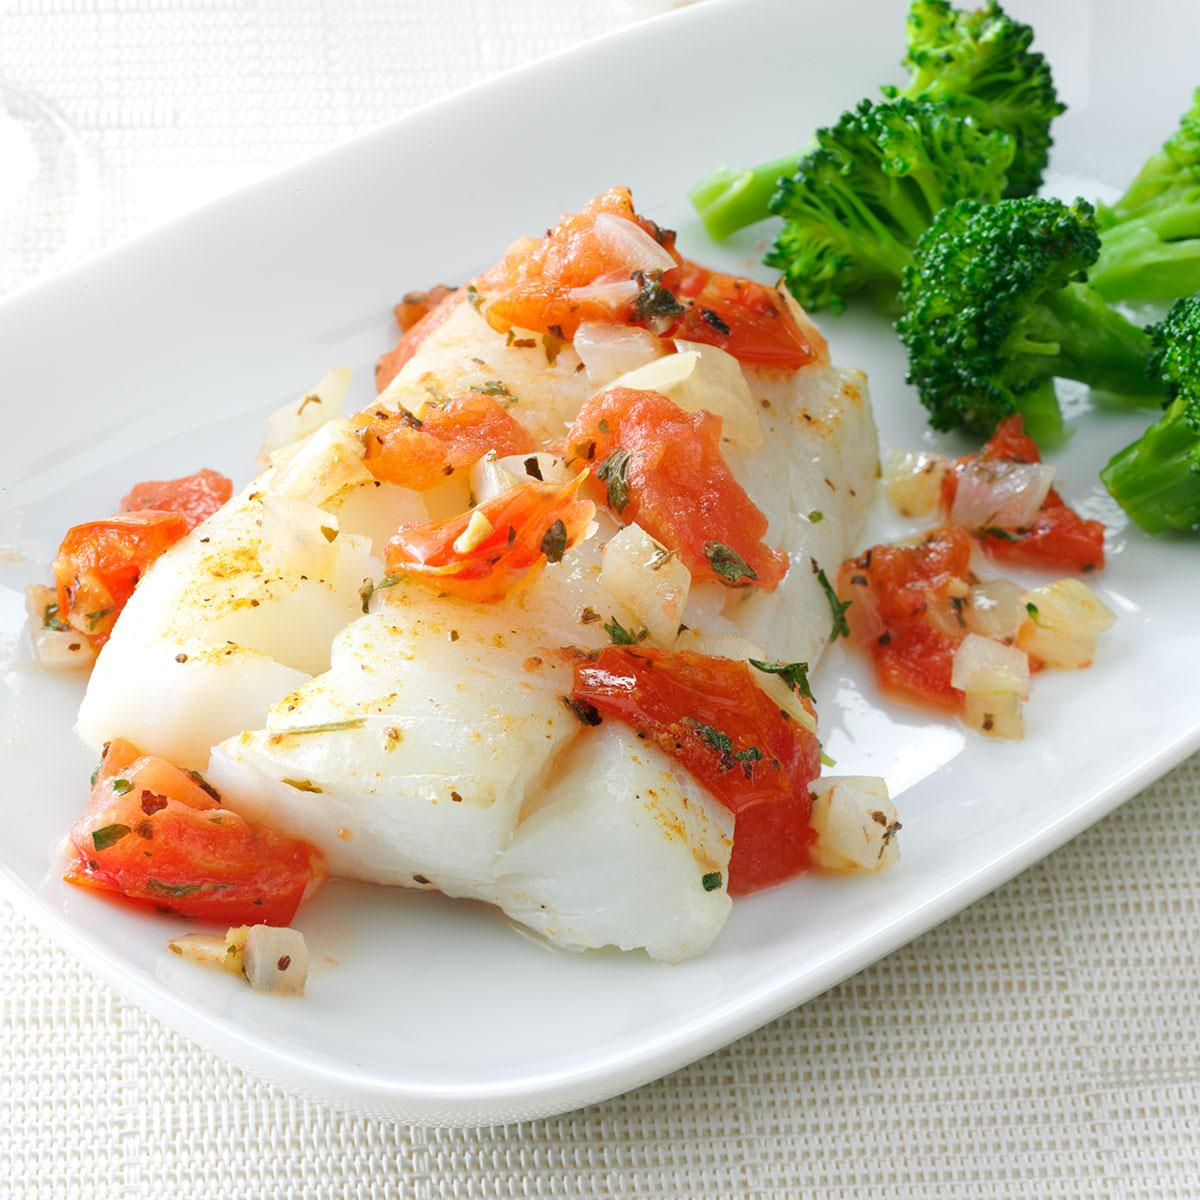 70 Low Calorie Recipes For High Stress Days: Cod Delight Recipe